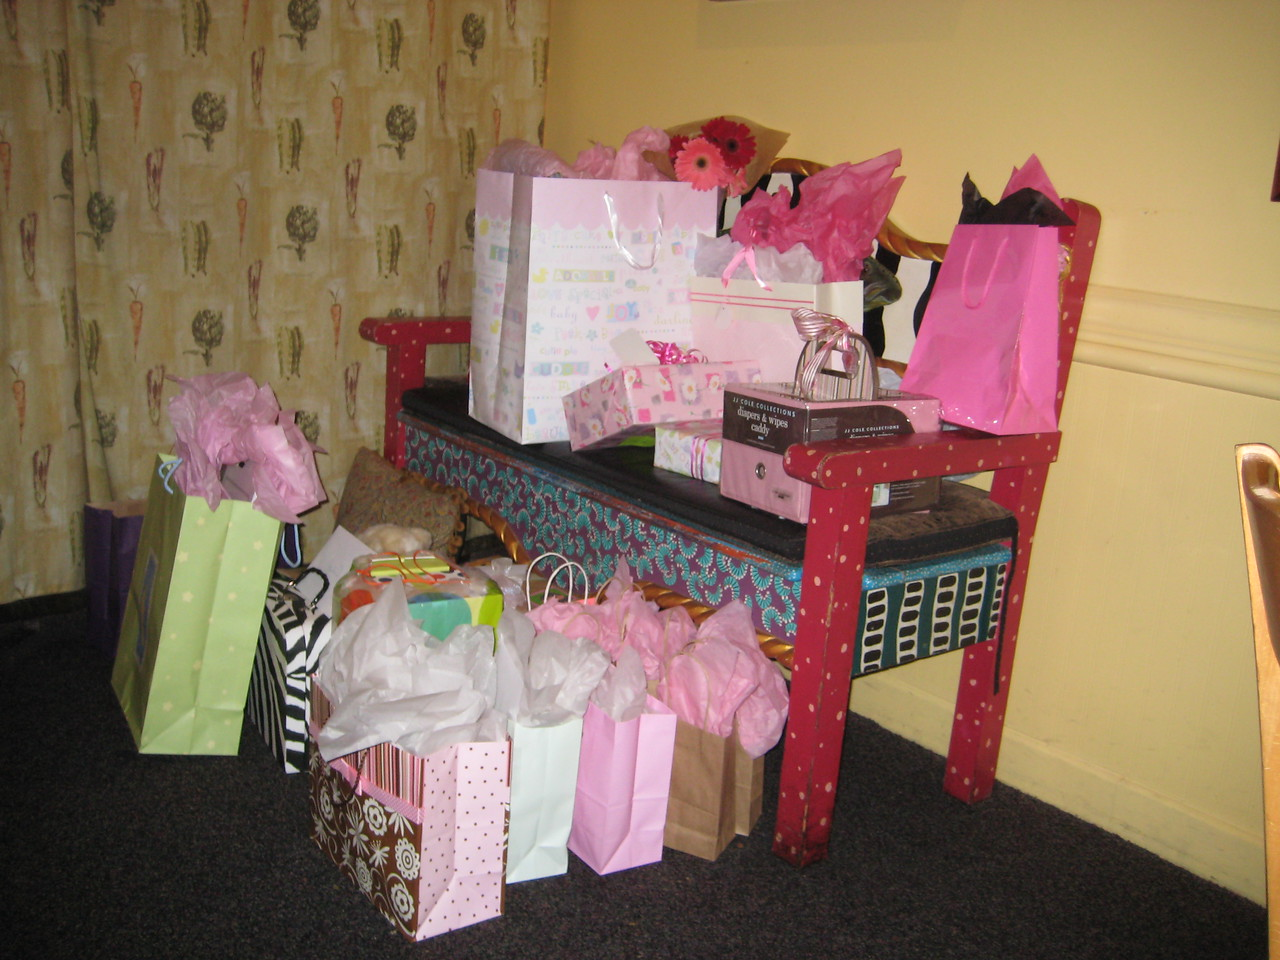 Presents at the shower